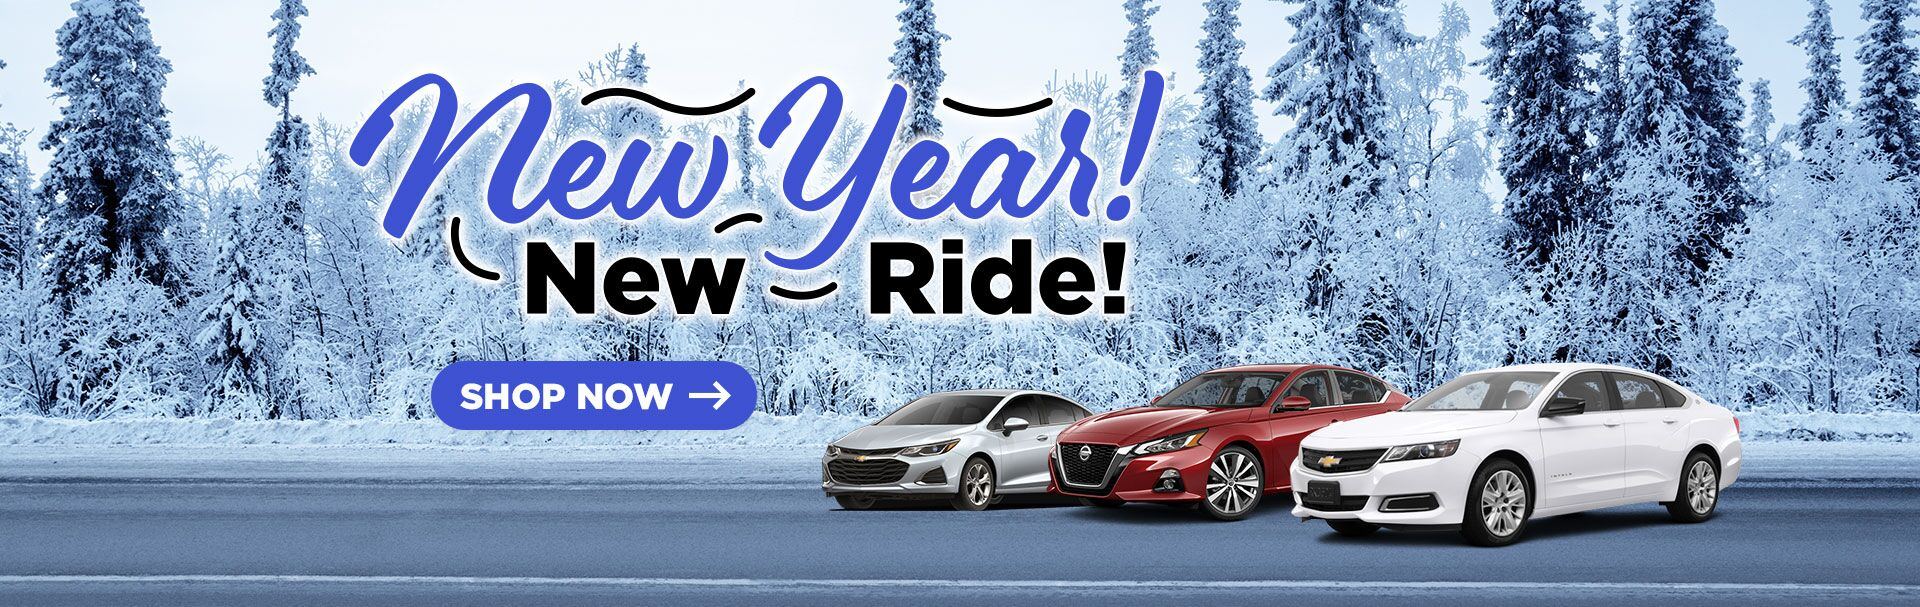 Auto Bank - New Year Specials